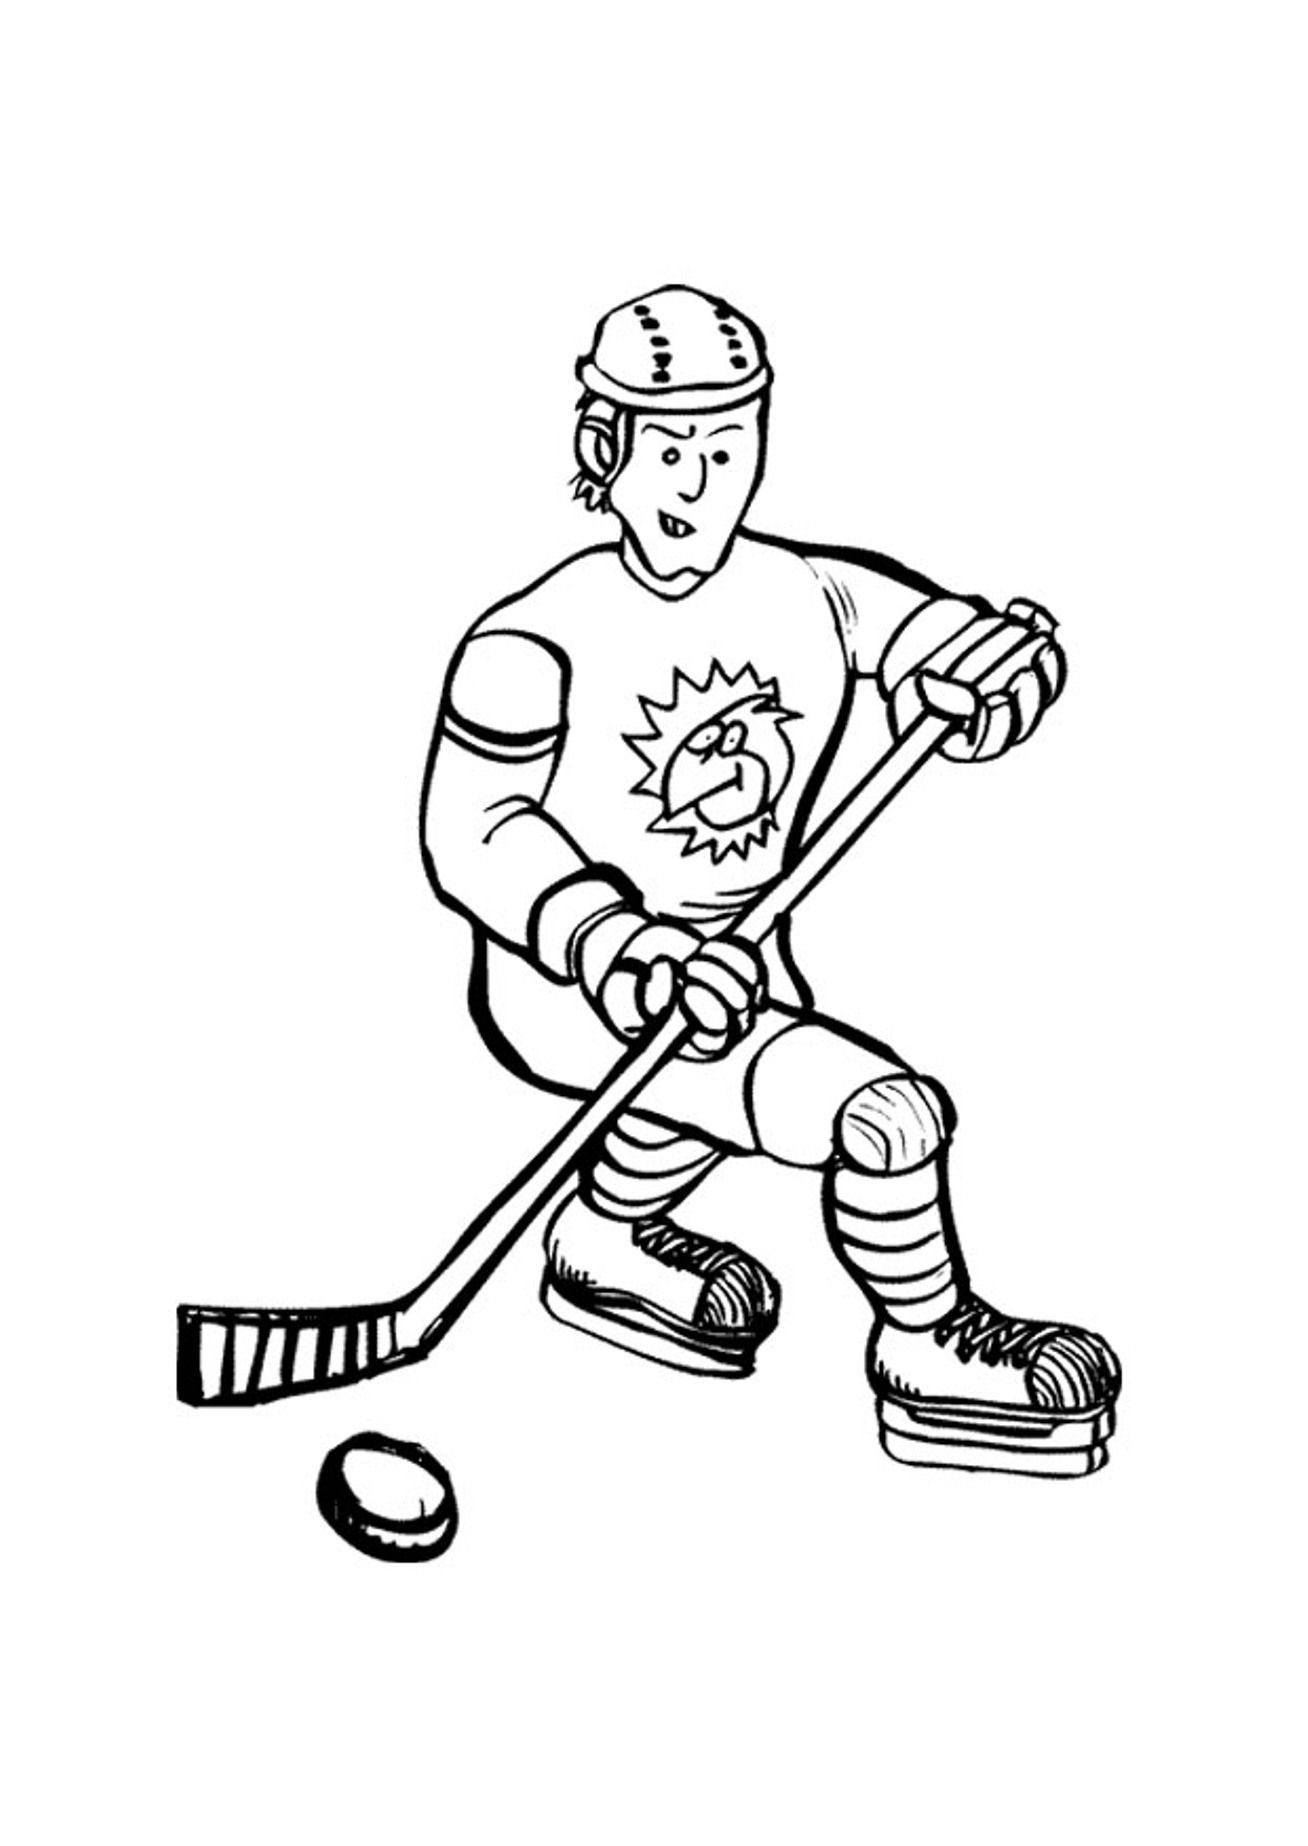 hockey coloring pages to print free printable hockey coloring pages coloring home hockey print to pages coloring